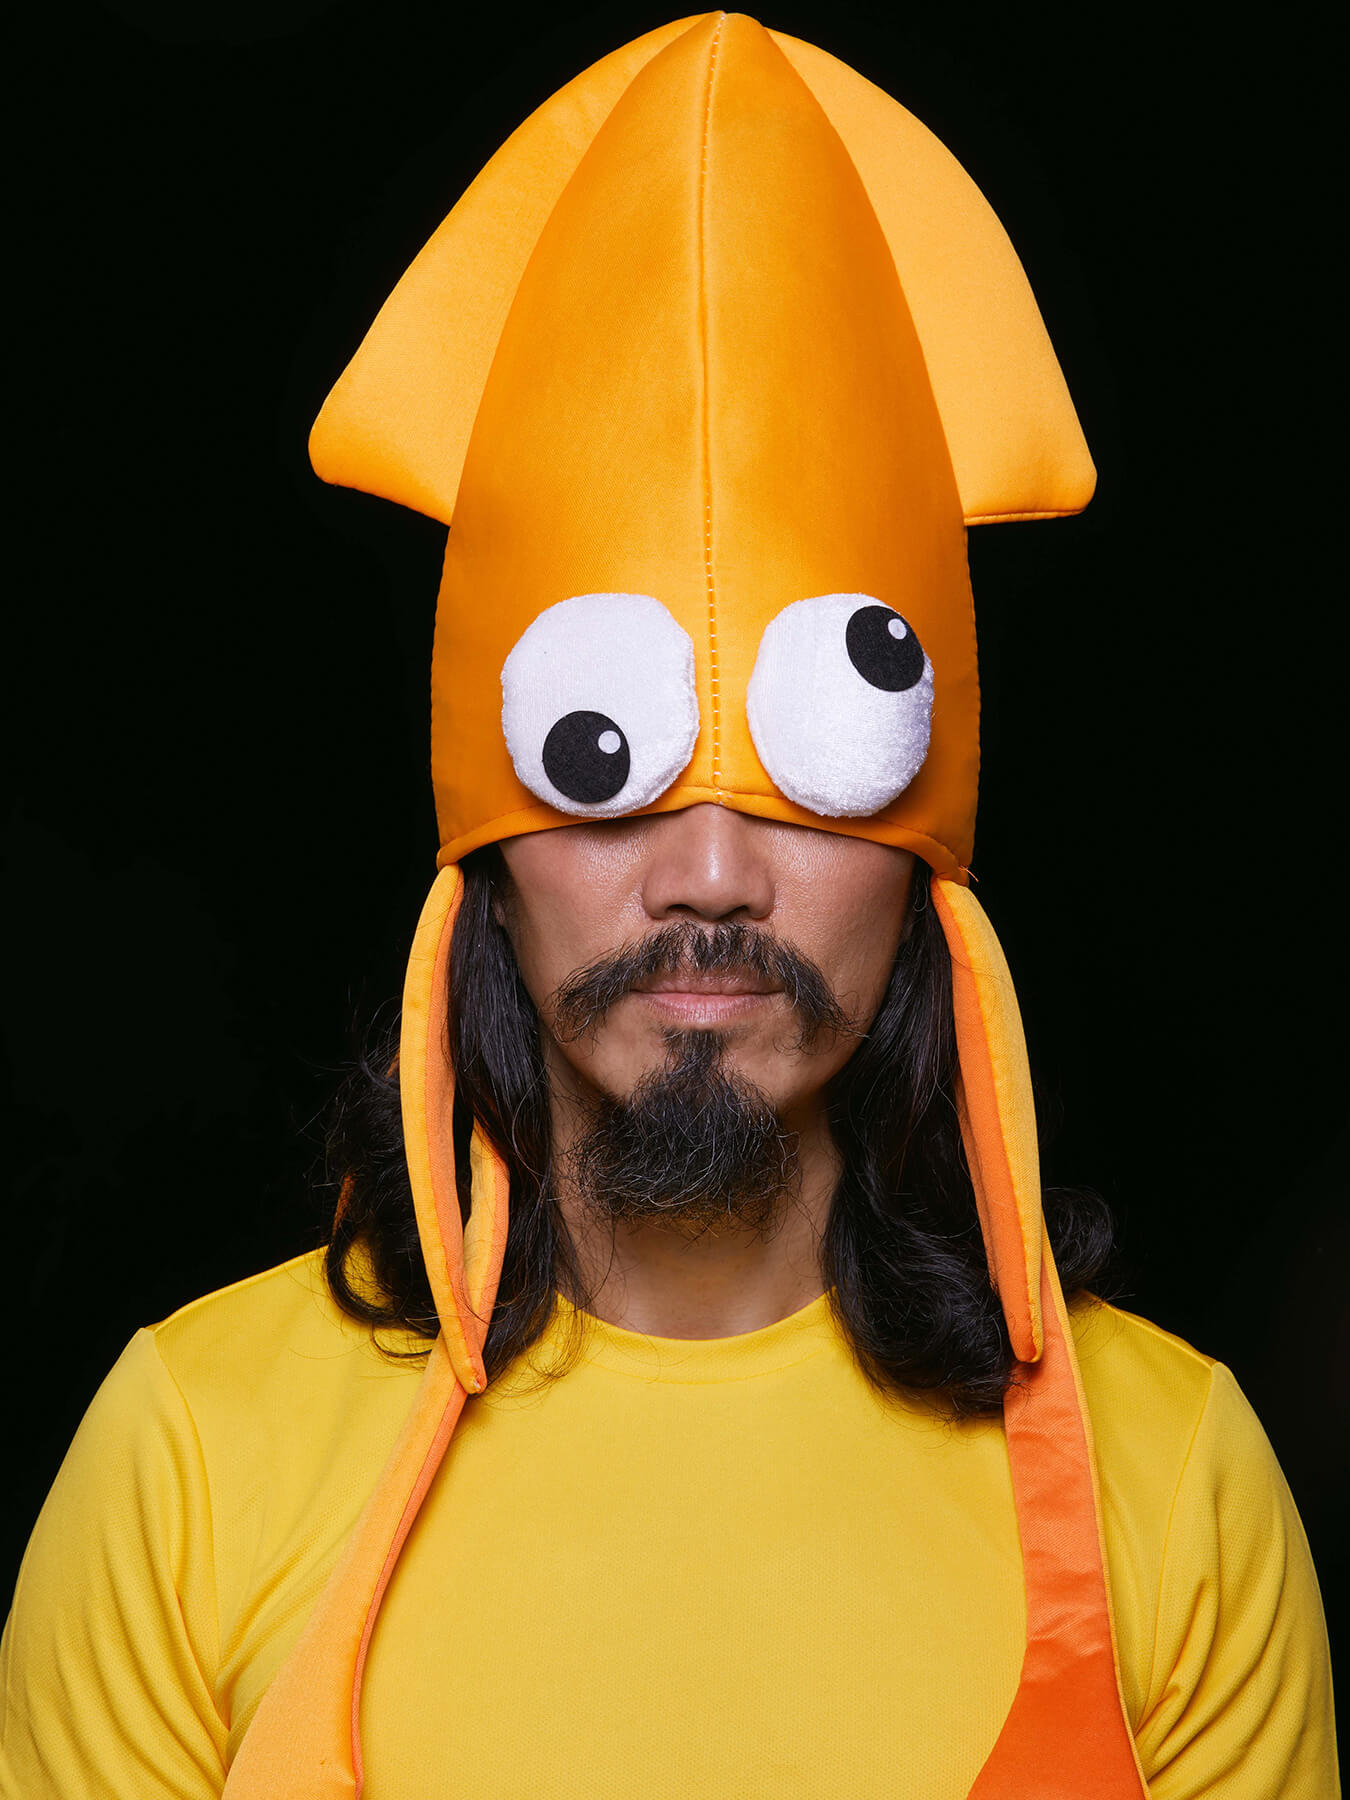 Derong is in a squid costume